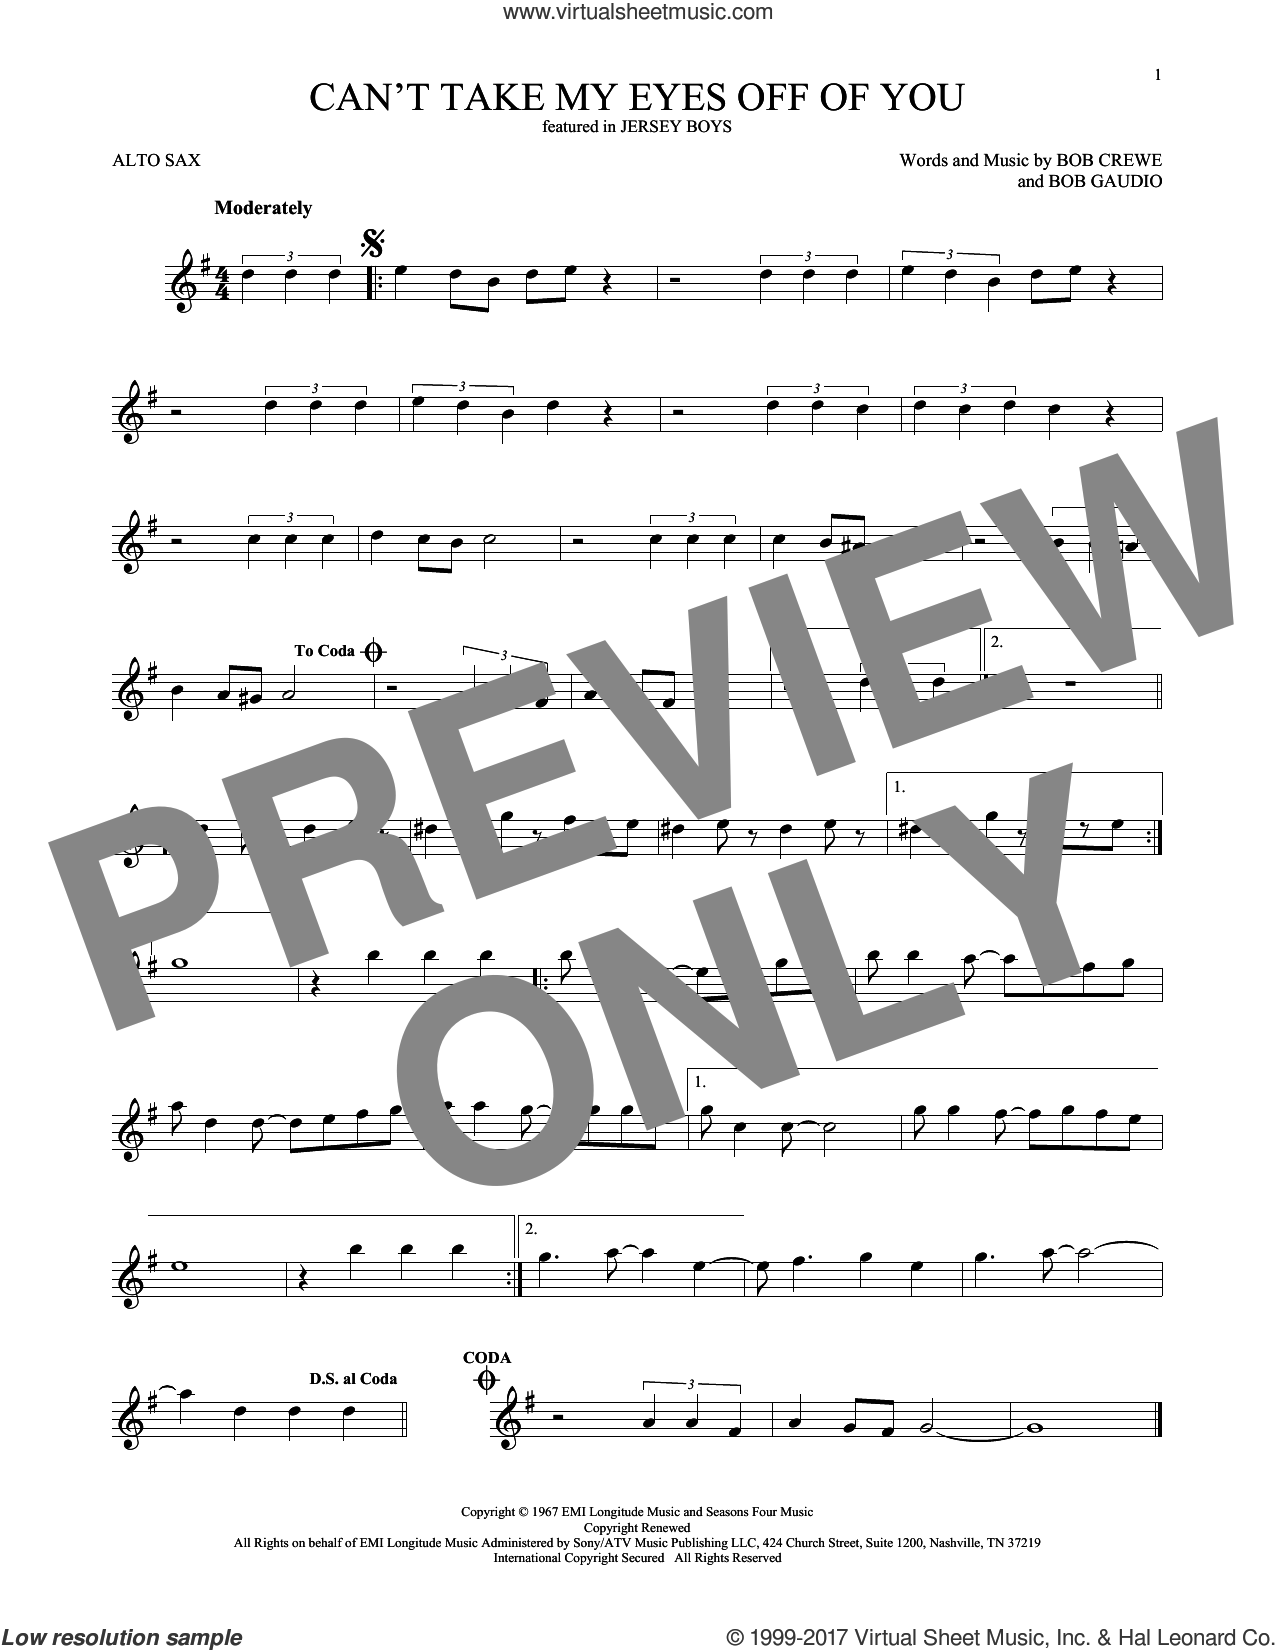 Can't Take My Eyes Off Of You sheet music for alto saxophone solo by The Four Seasons, Frankie Valli, Bob Crewe and Bob Gaudio, intermediate skill level